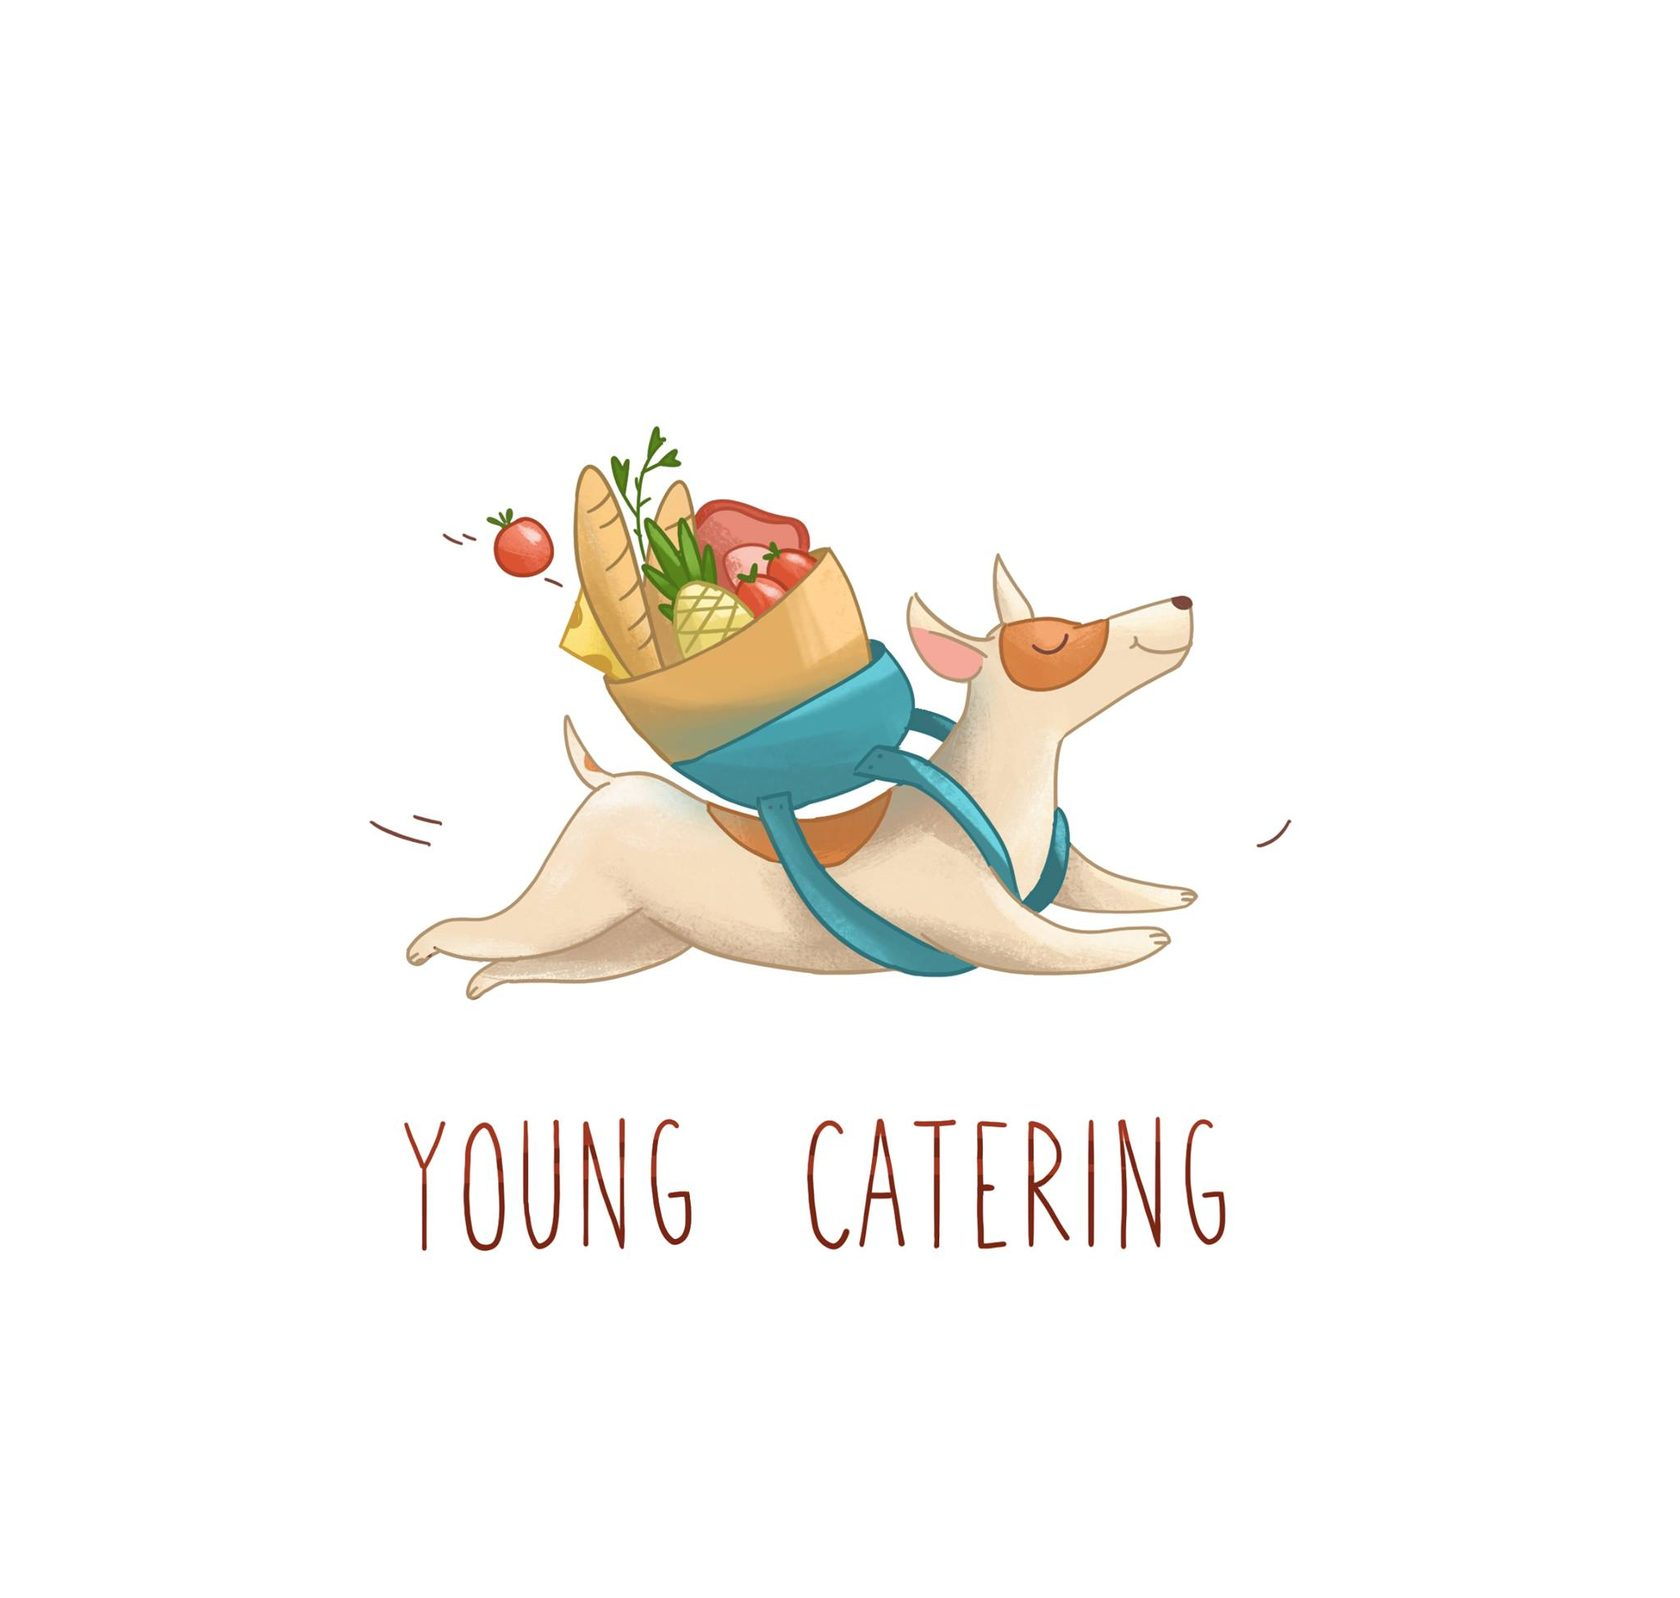 Young Catering Shop